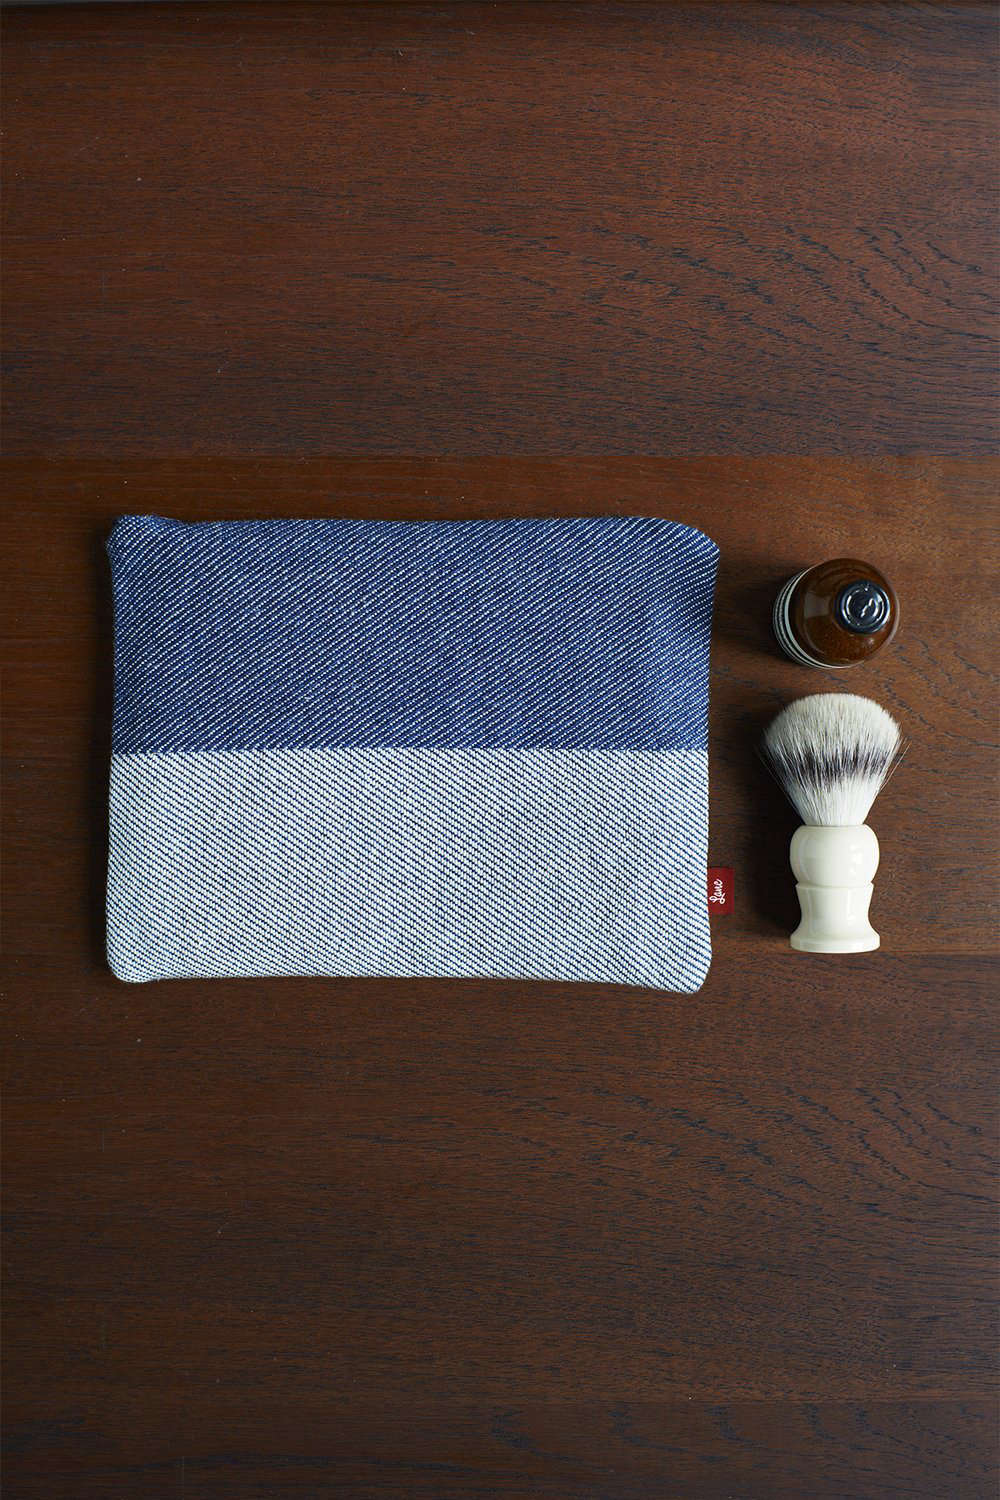 Like the oblong bag, the Flat Pouch Indigo Cotton Wash Bag is lined with a protective cotton; £37 ($47.80).